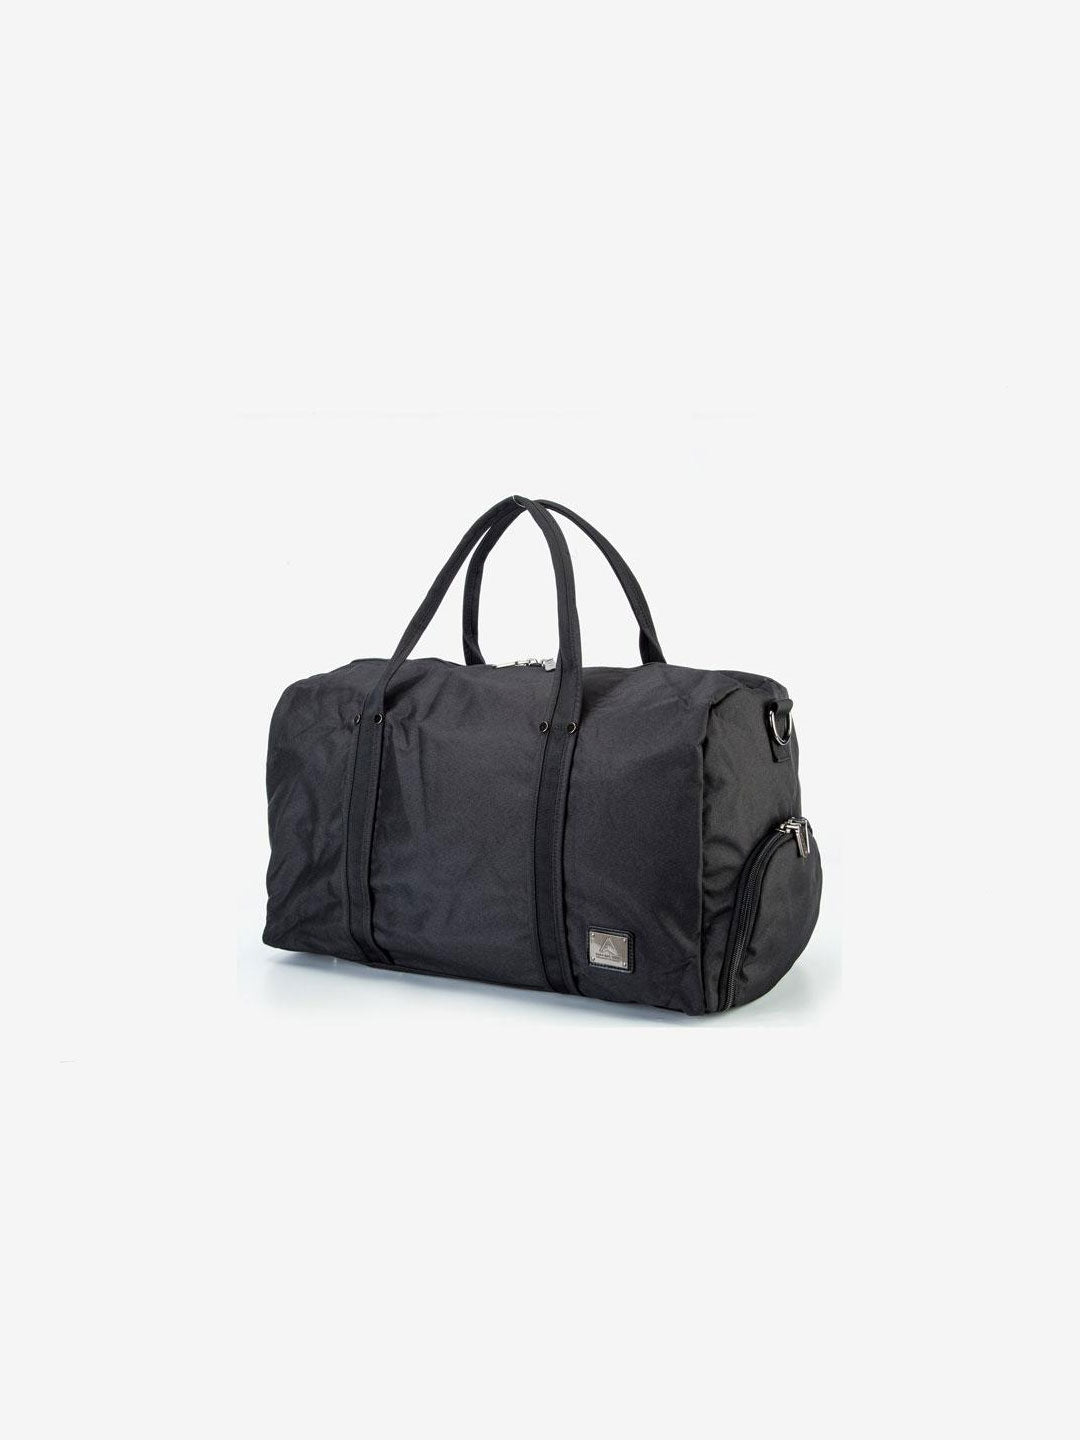 The Trainer Bag in Black